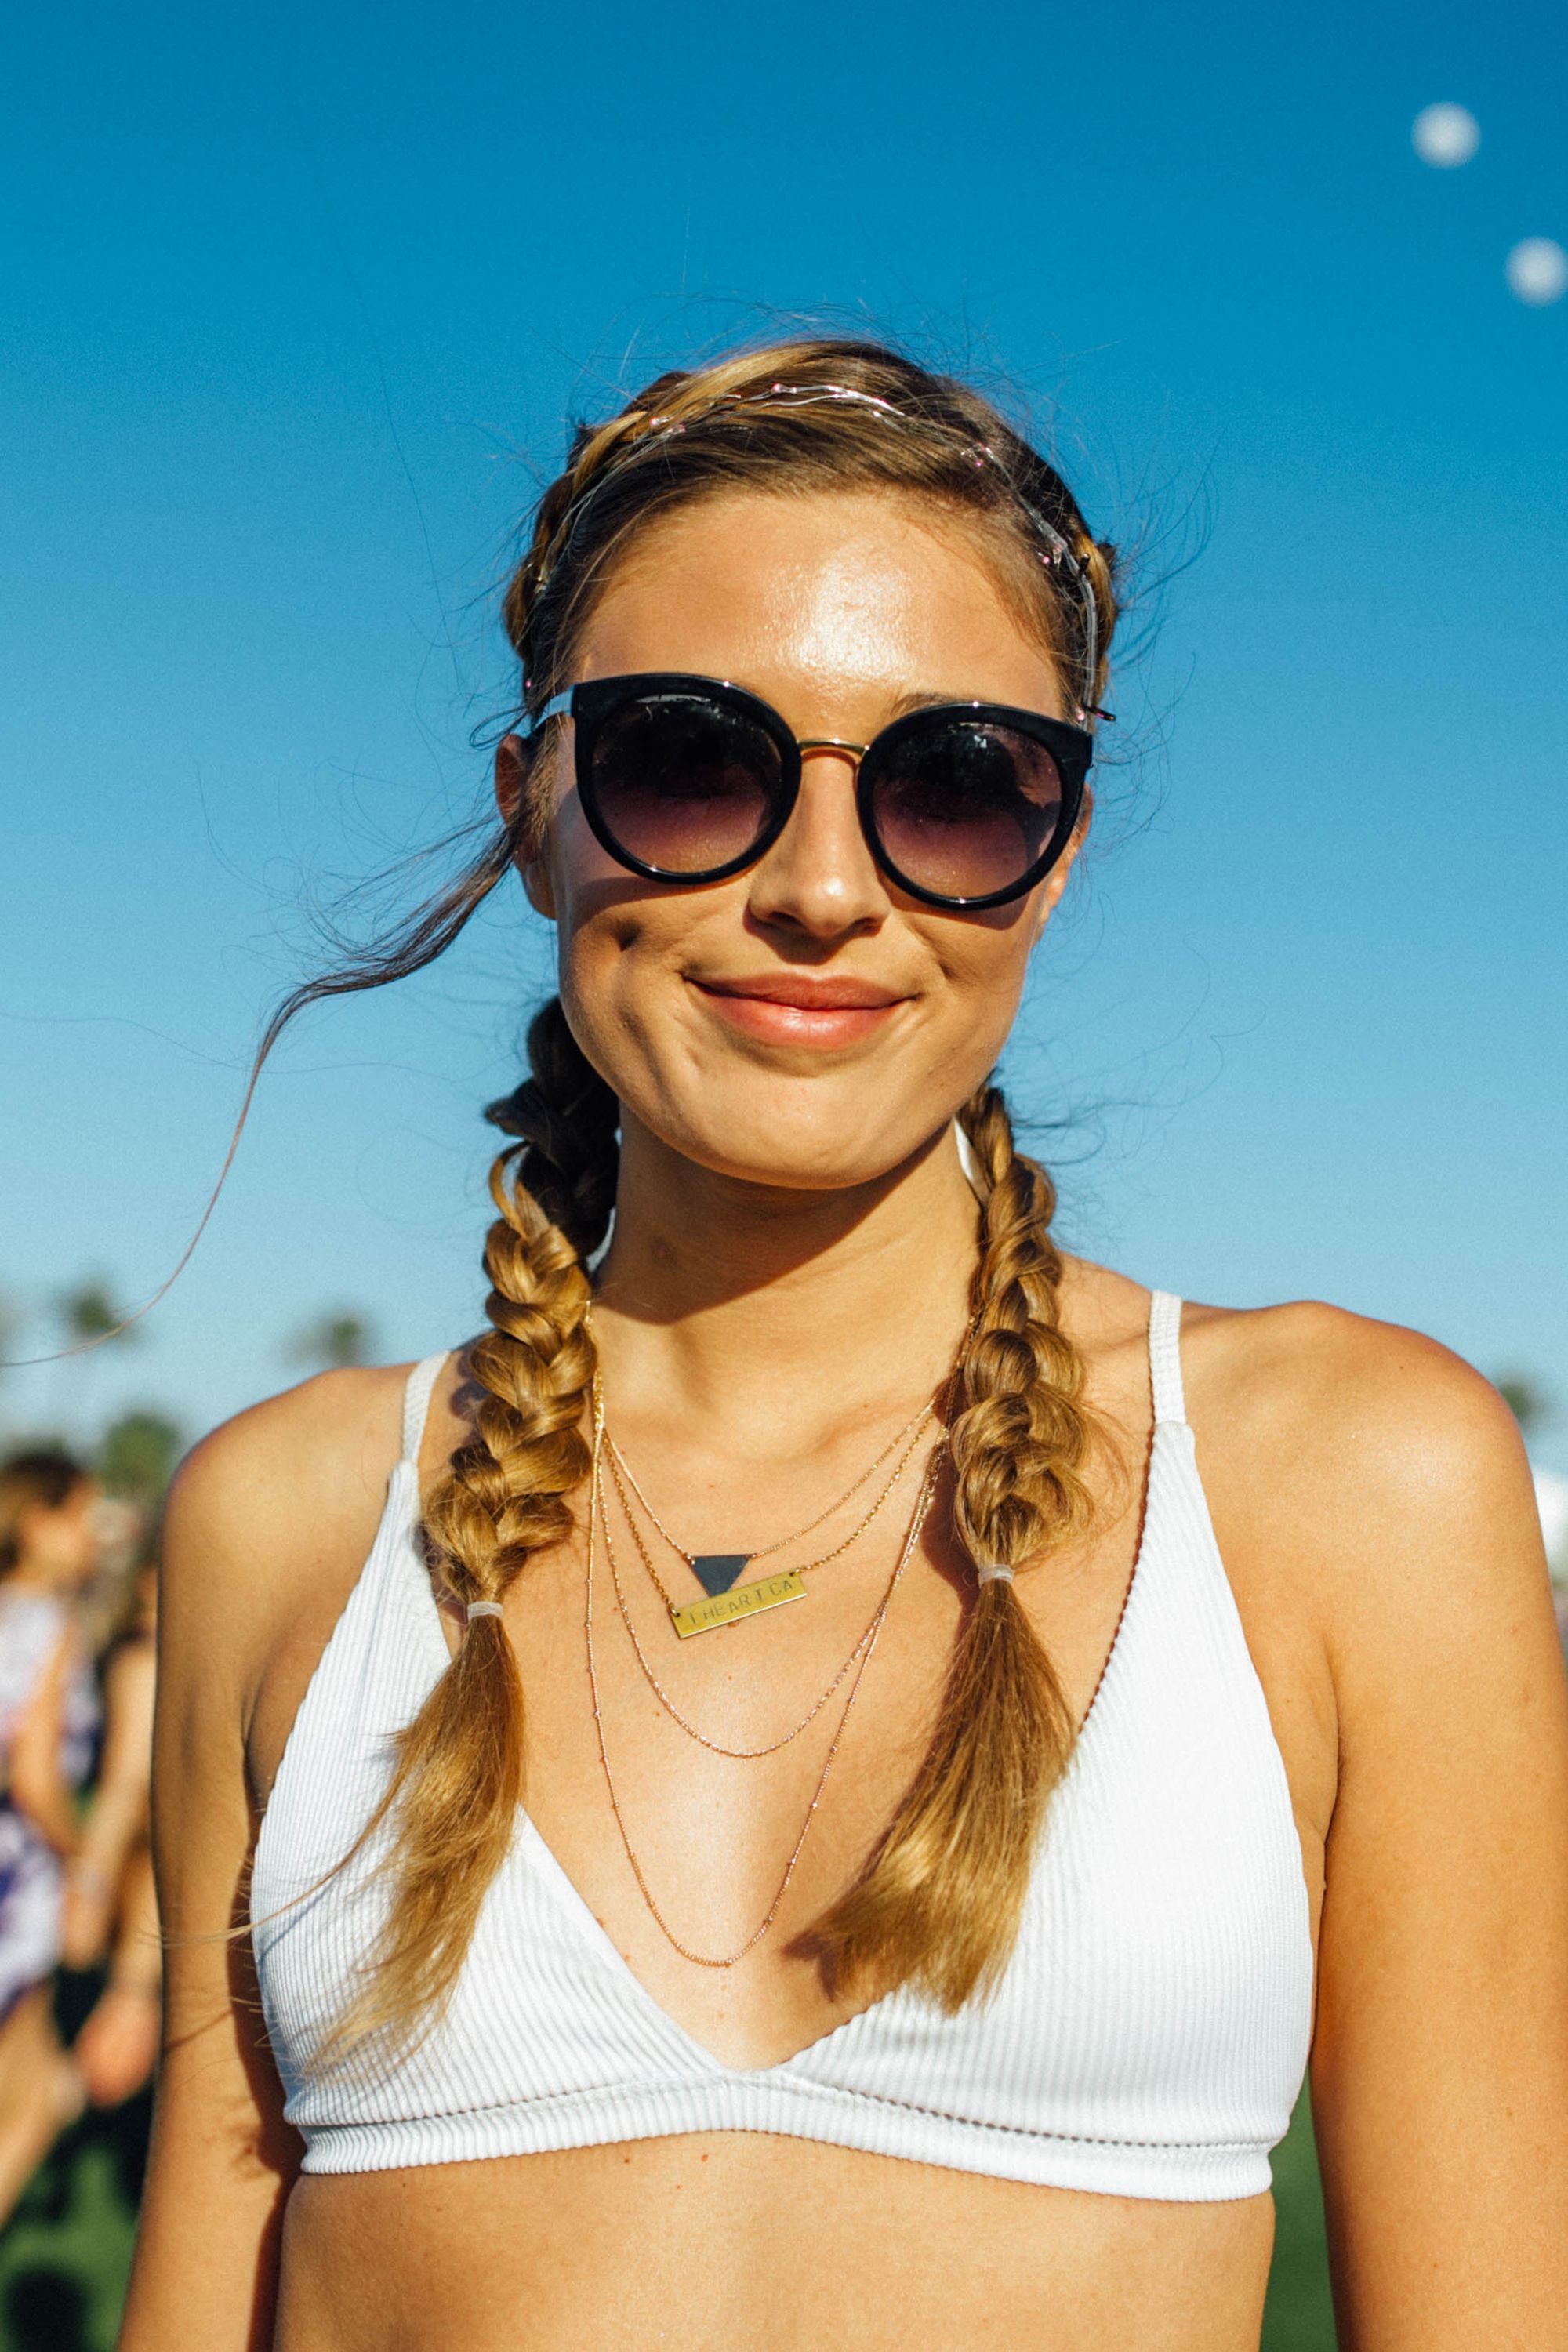 Hair?hot Braided trend this summer pictures forecasting to wear in spring in 2019